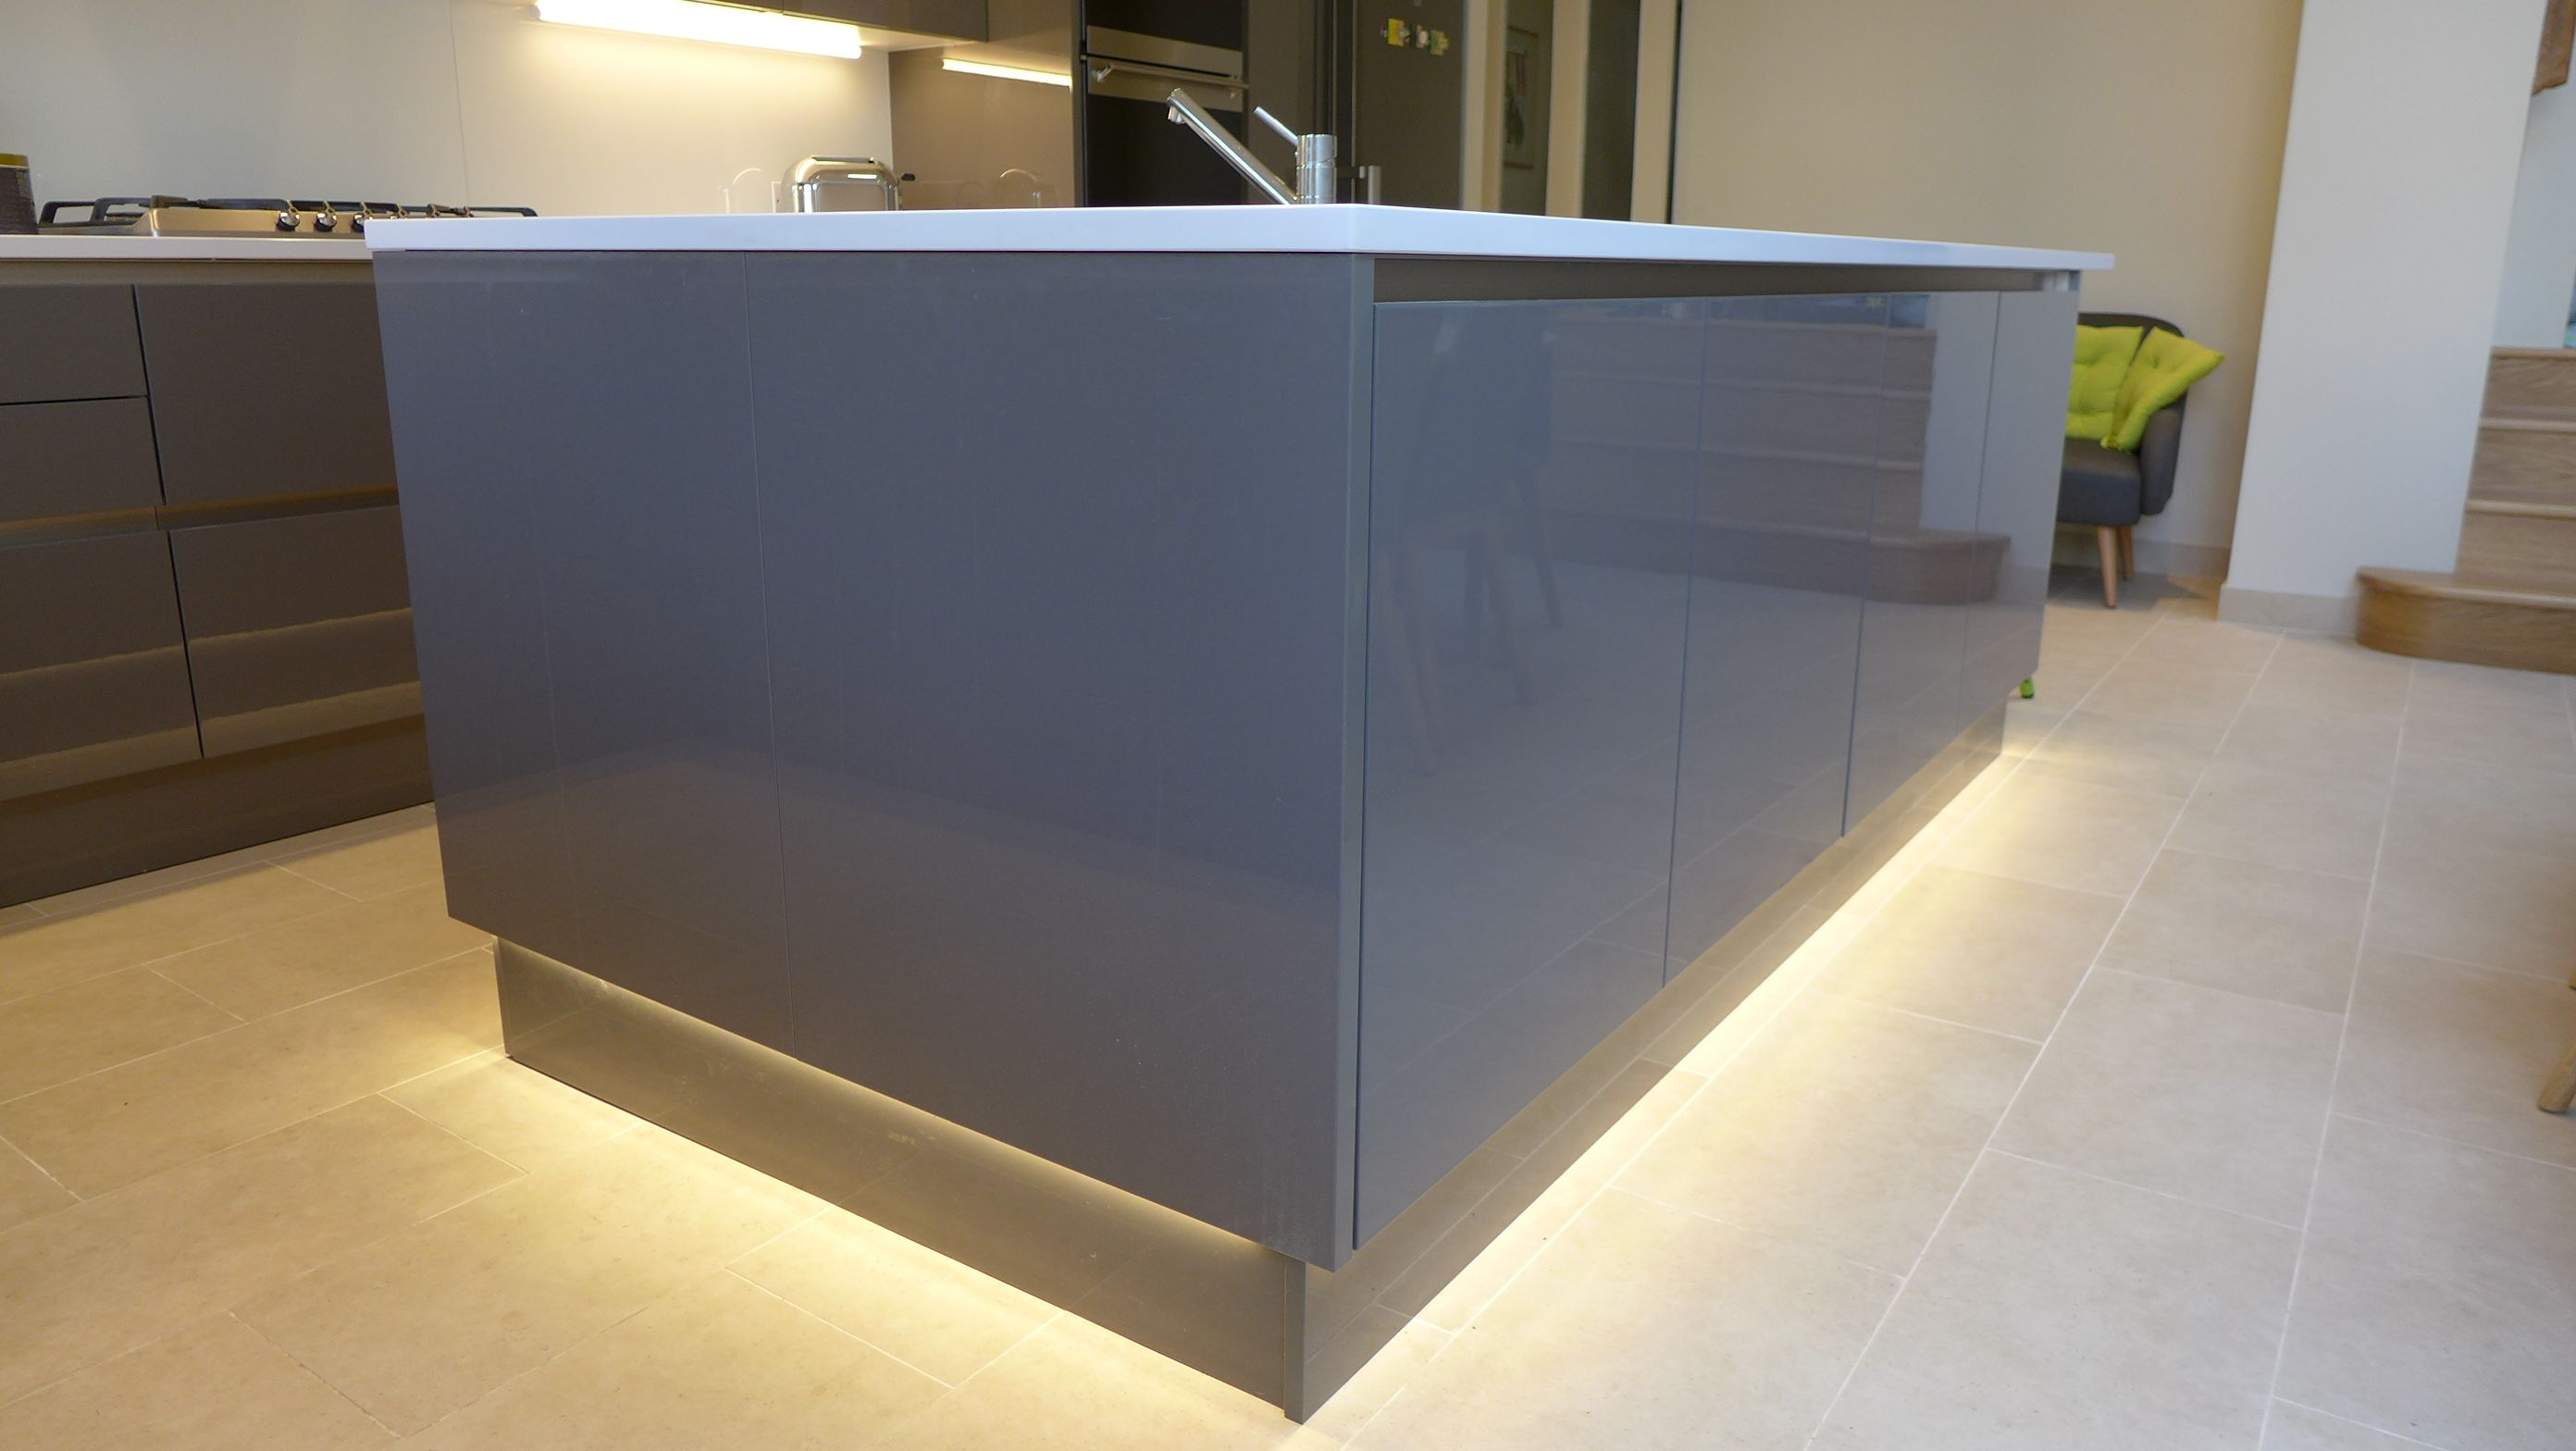 watch 6fdcb 856e7 LED strip lighting beneath plinth of kitchen island. Note ...